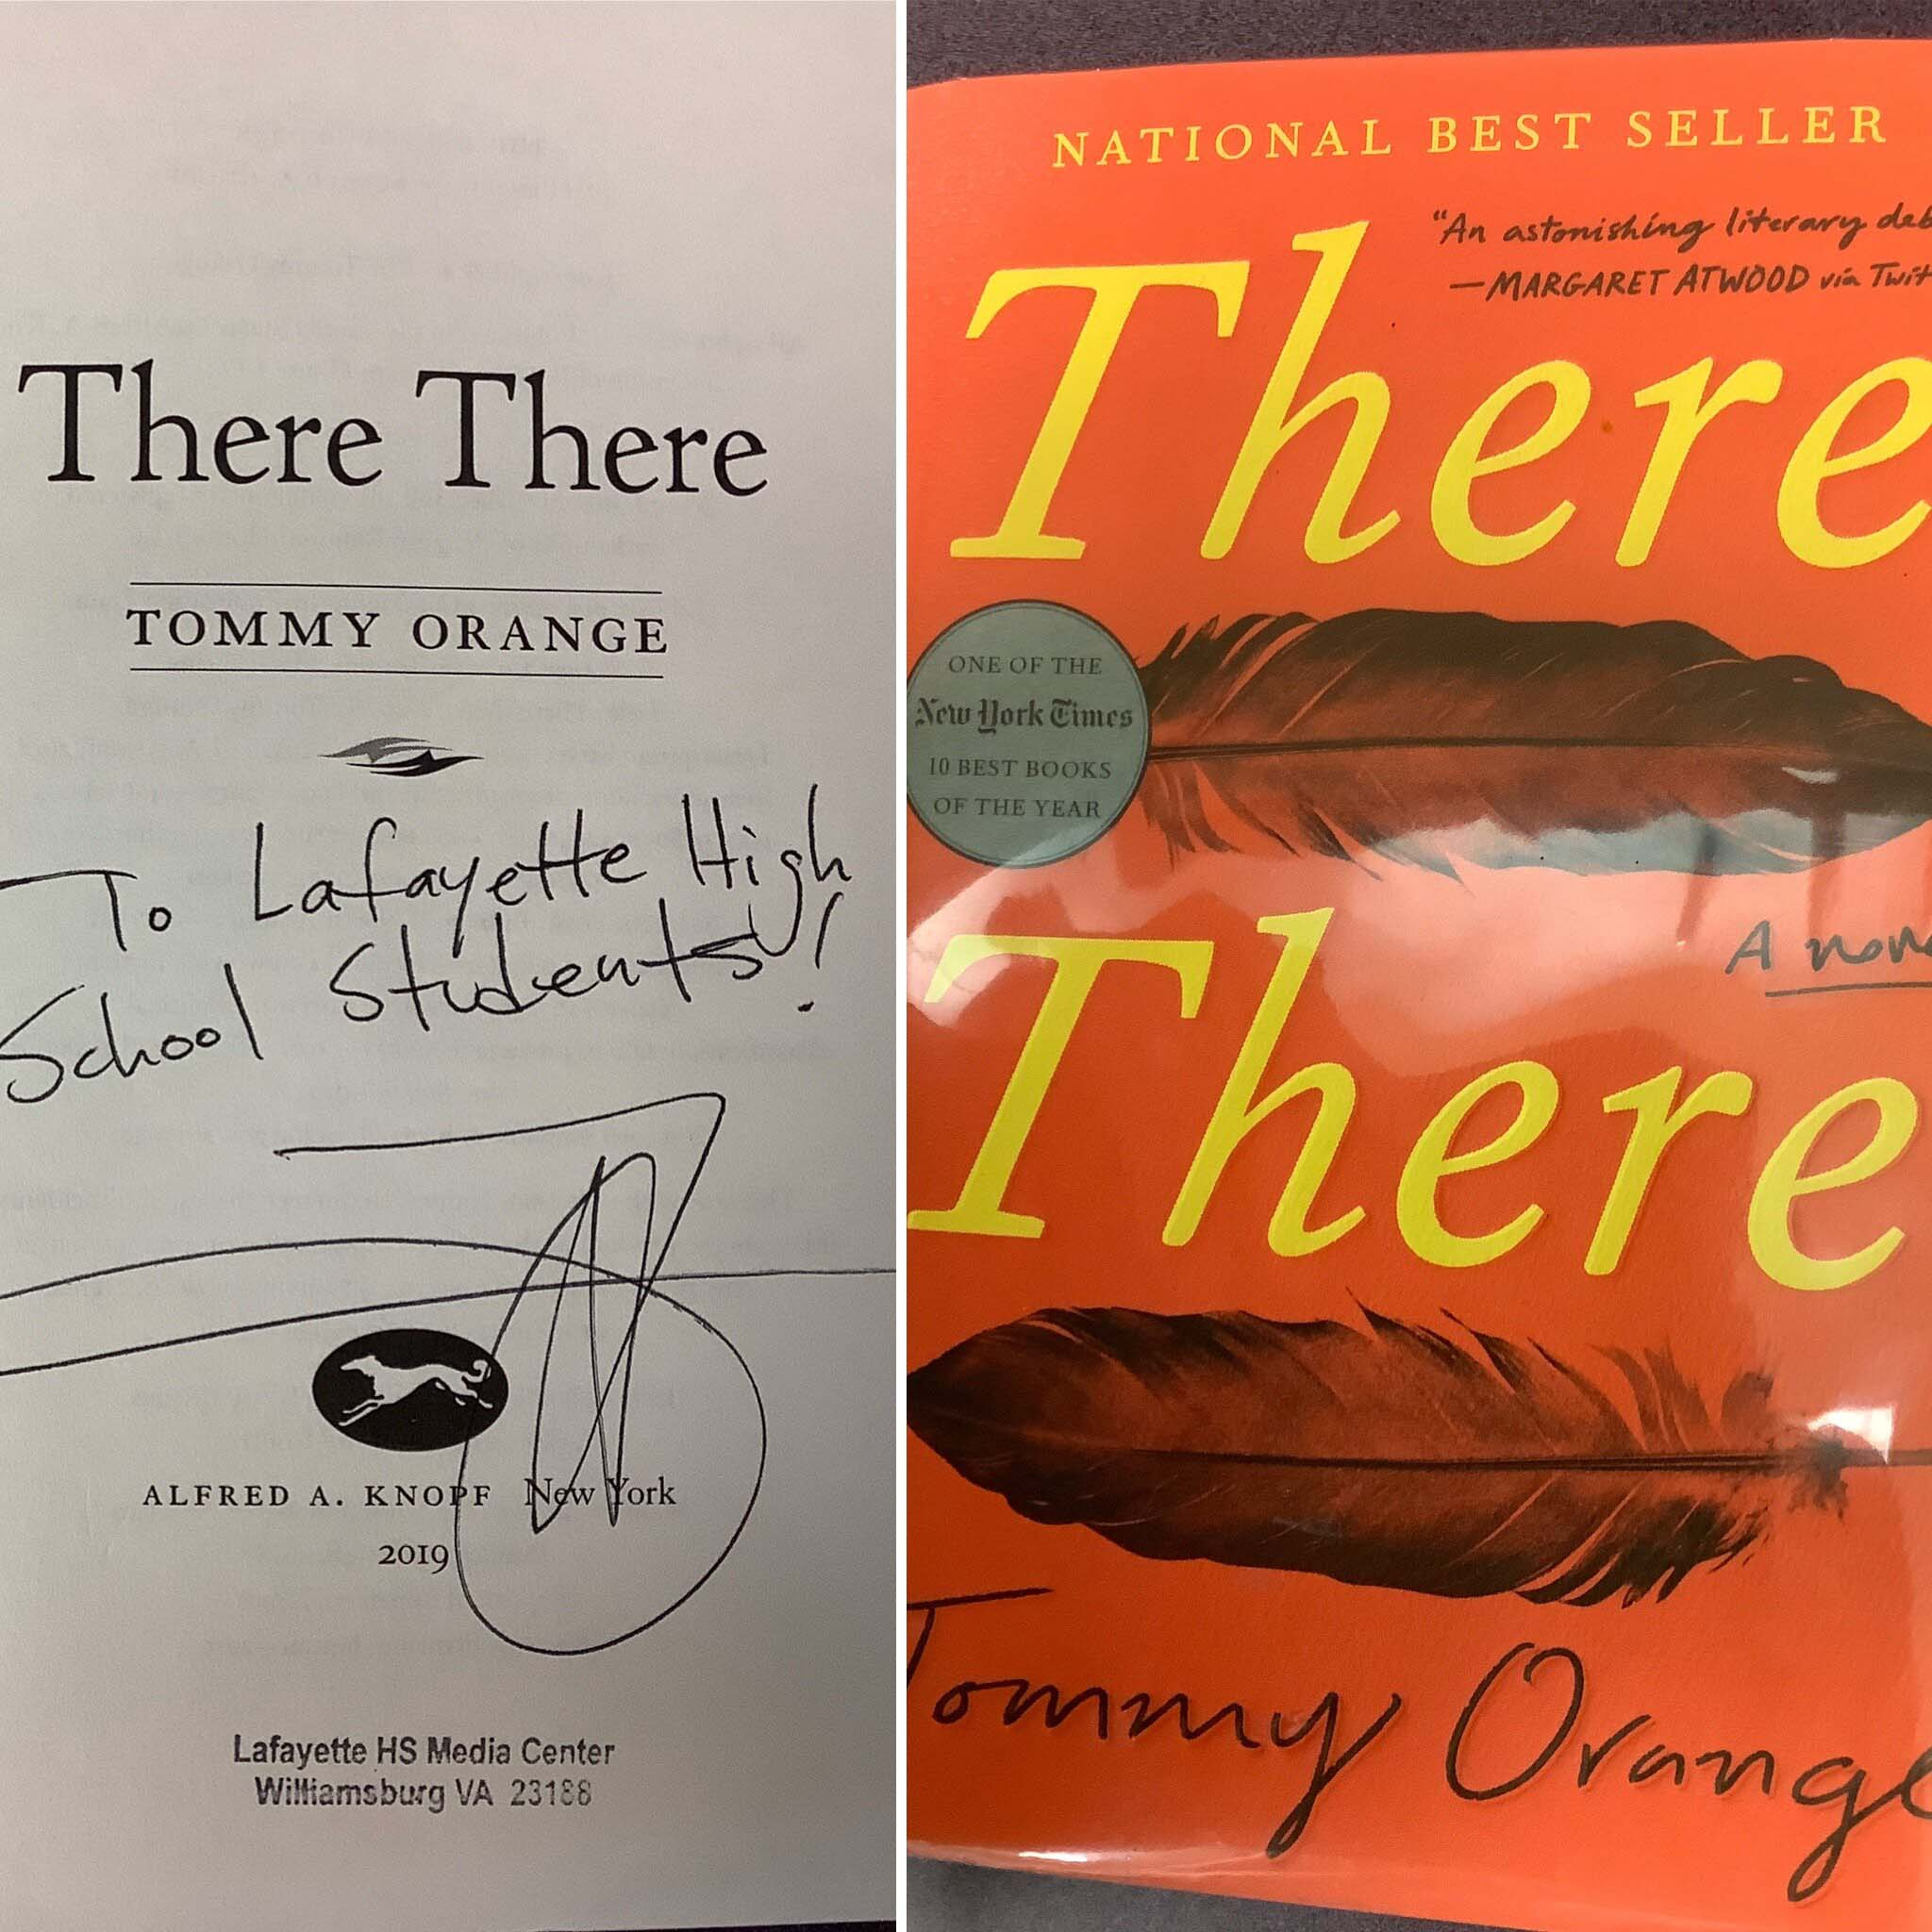 """Autographed title page of the book, """"There There""""."""